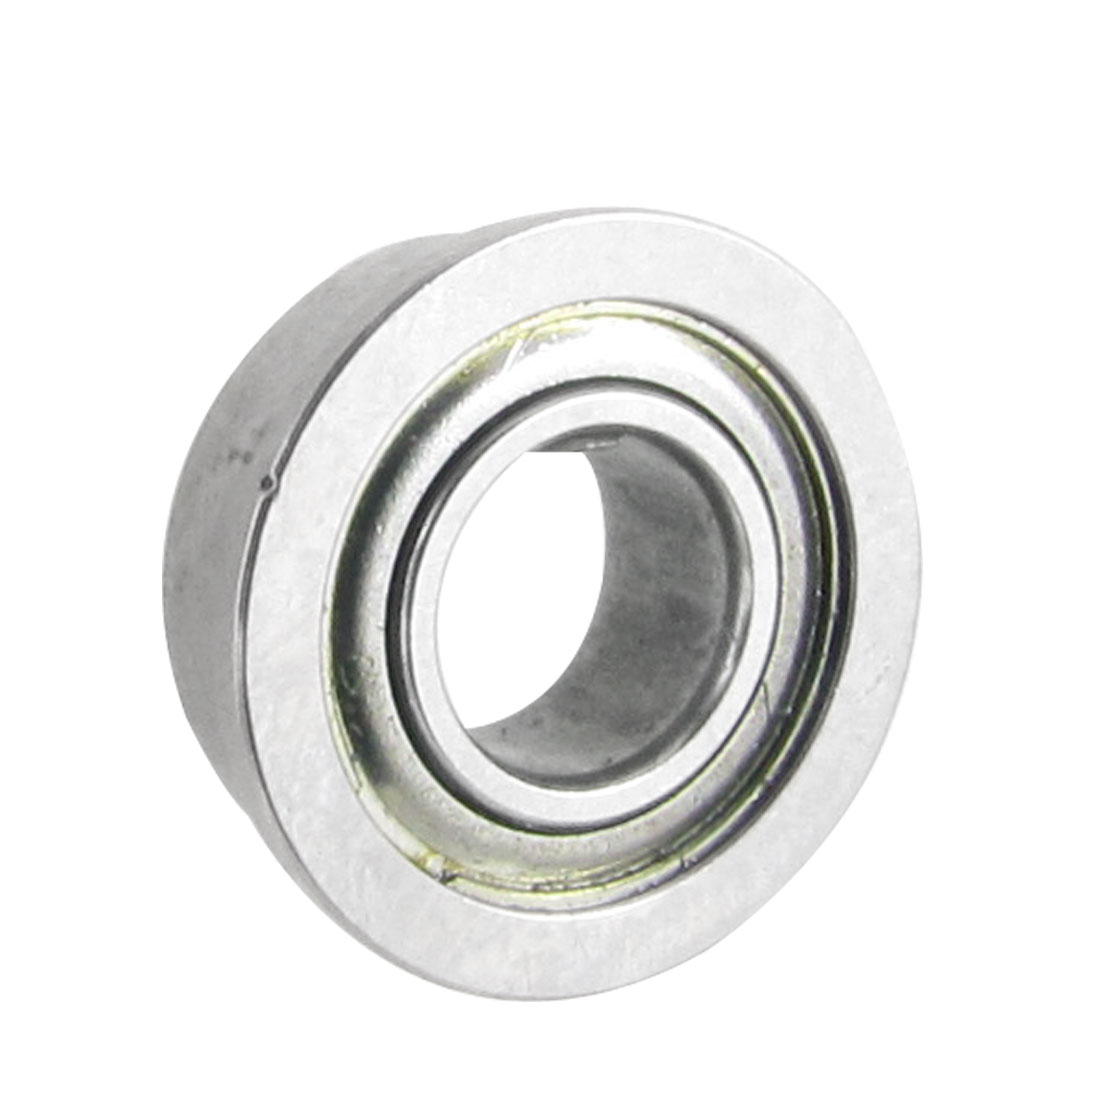 10mm x 5mm x 4mm Metal Shields Deep Groove Flanged Ball Bearing Silver Tone